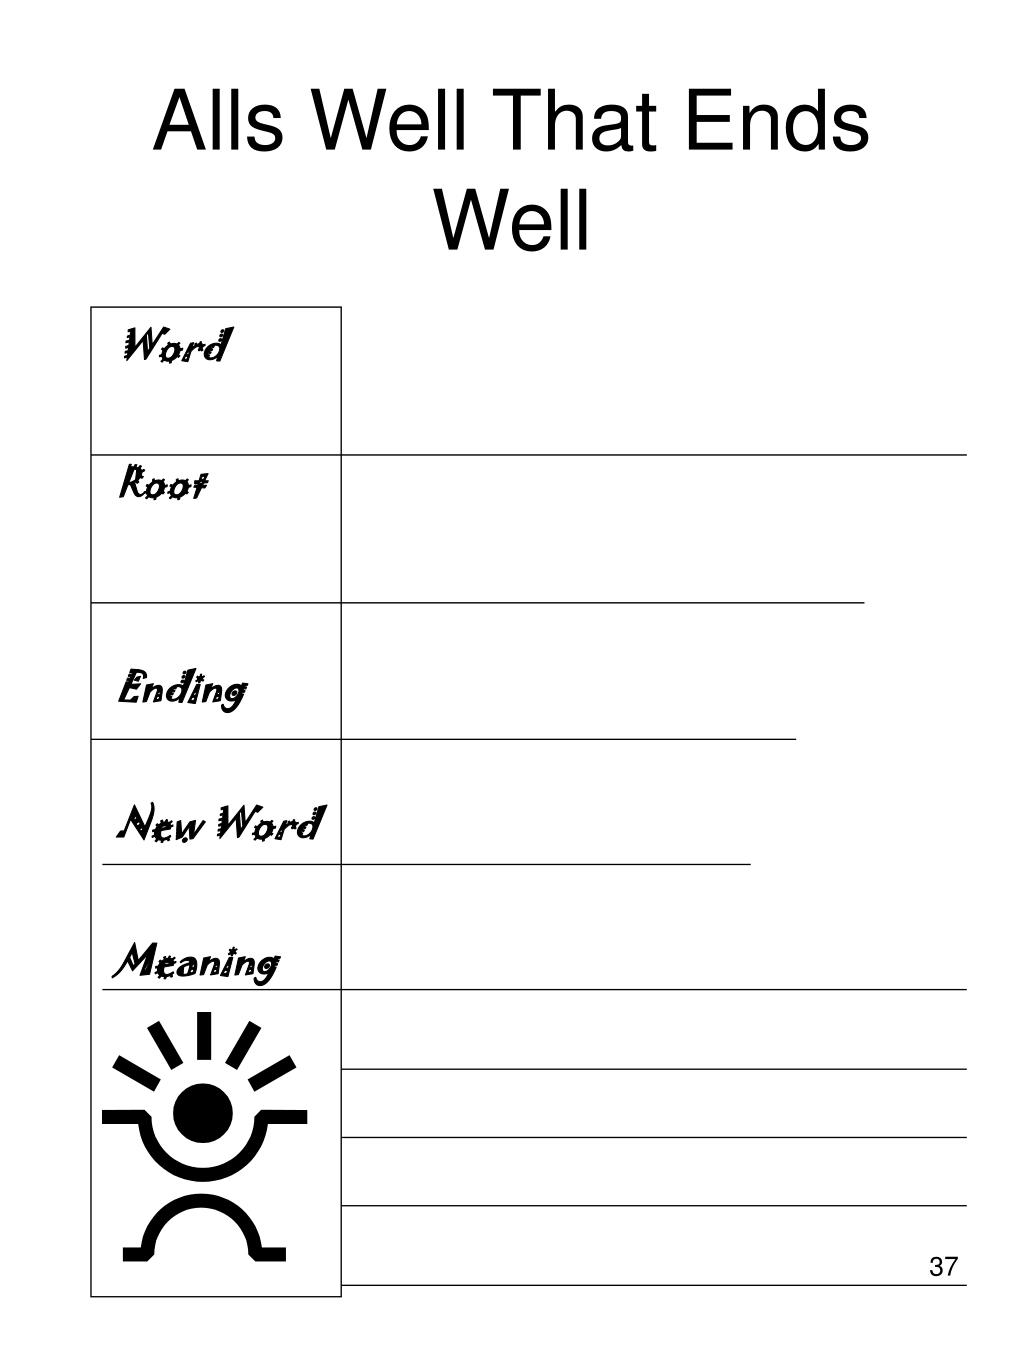 All well that ends well essay